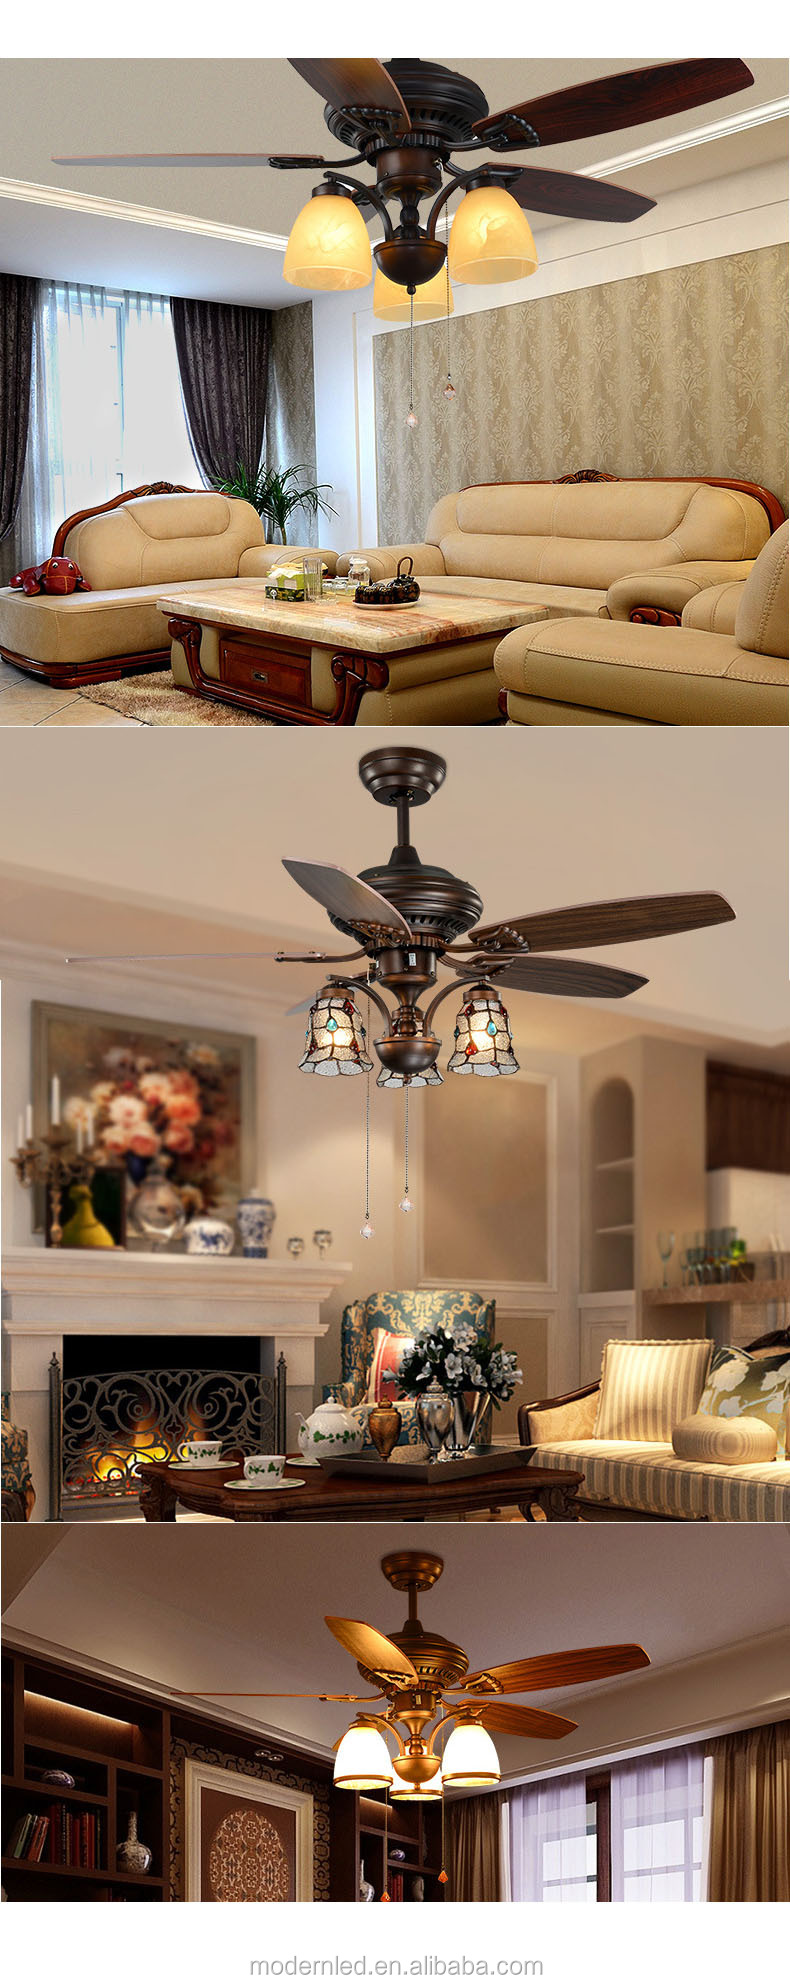 modern 42 inch bladeless ceiling fan with light